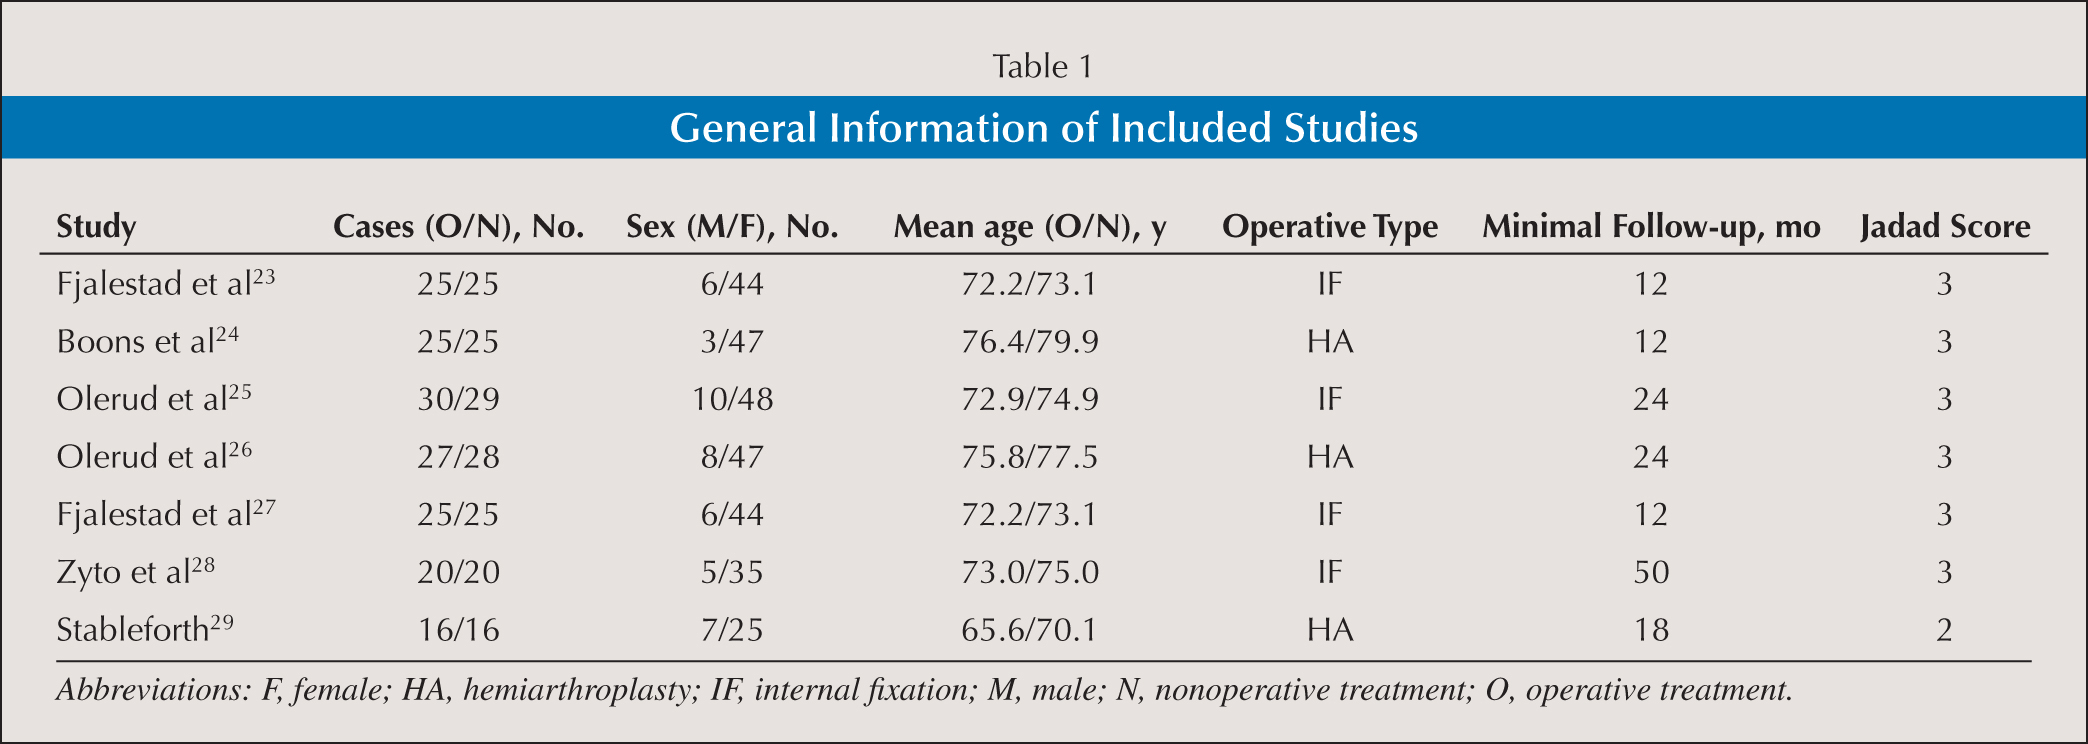 General Information of Included Studies